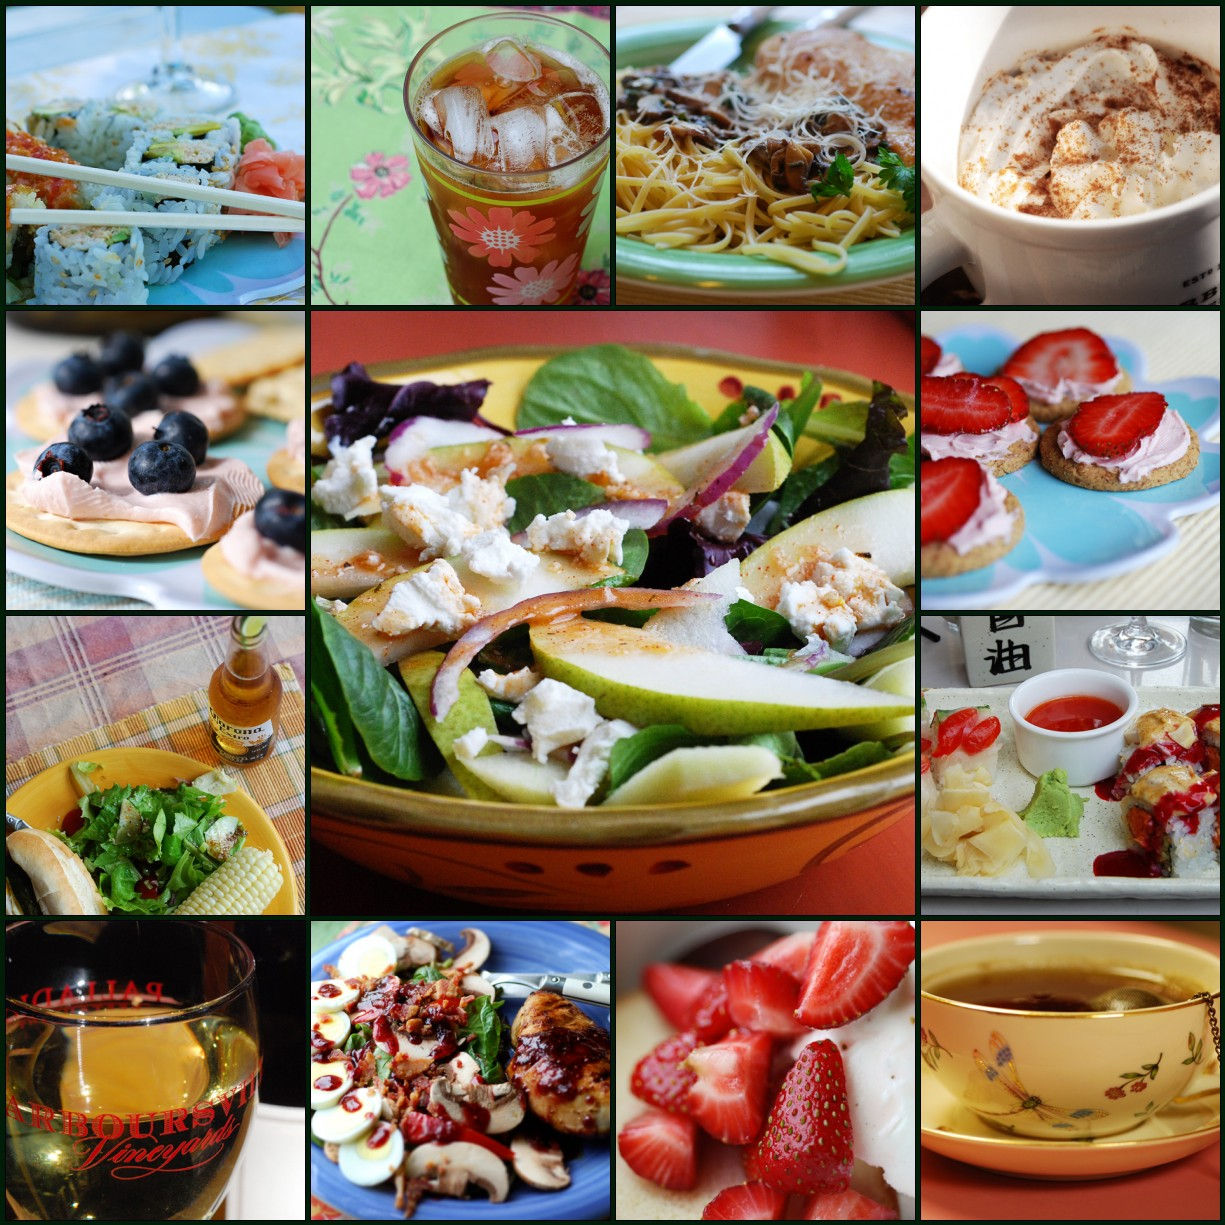 Mosaic Monday: Food & Drink